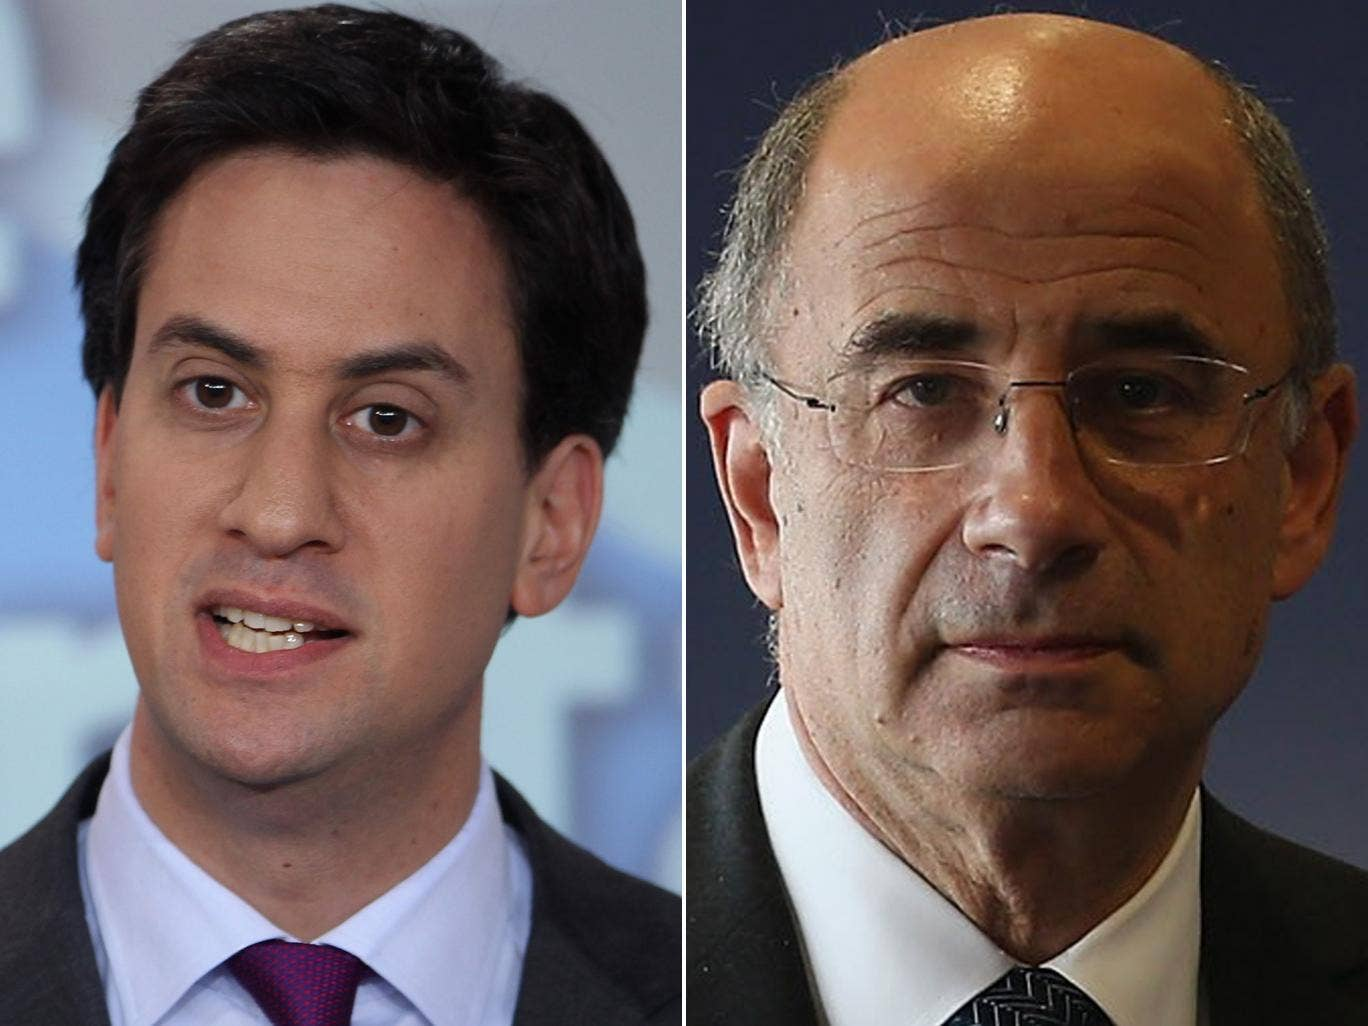 Ed Miliband will today publish a draft Bill to implement Lord Justice Leveson's (right) proposal for a new independent press regulator, to be overseen by a body backed by statute